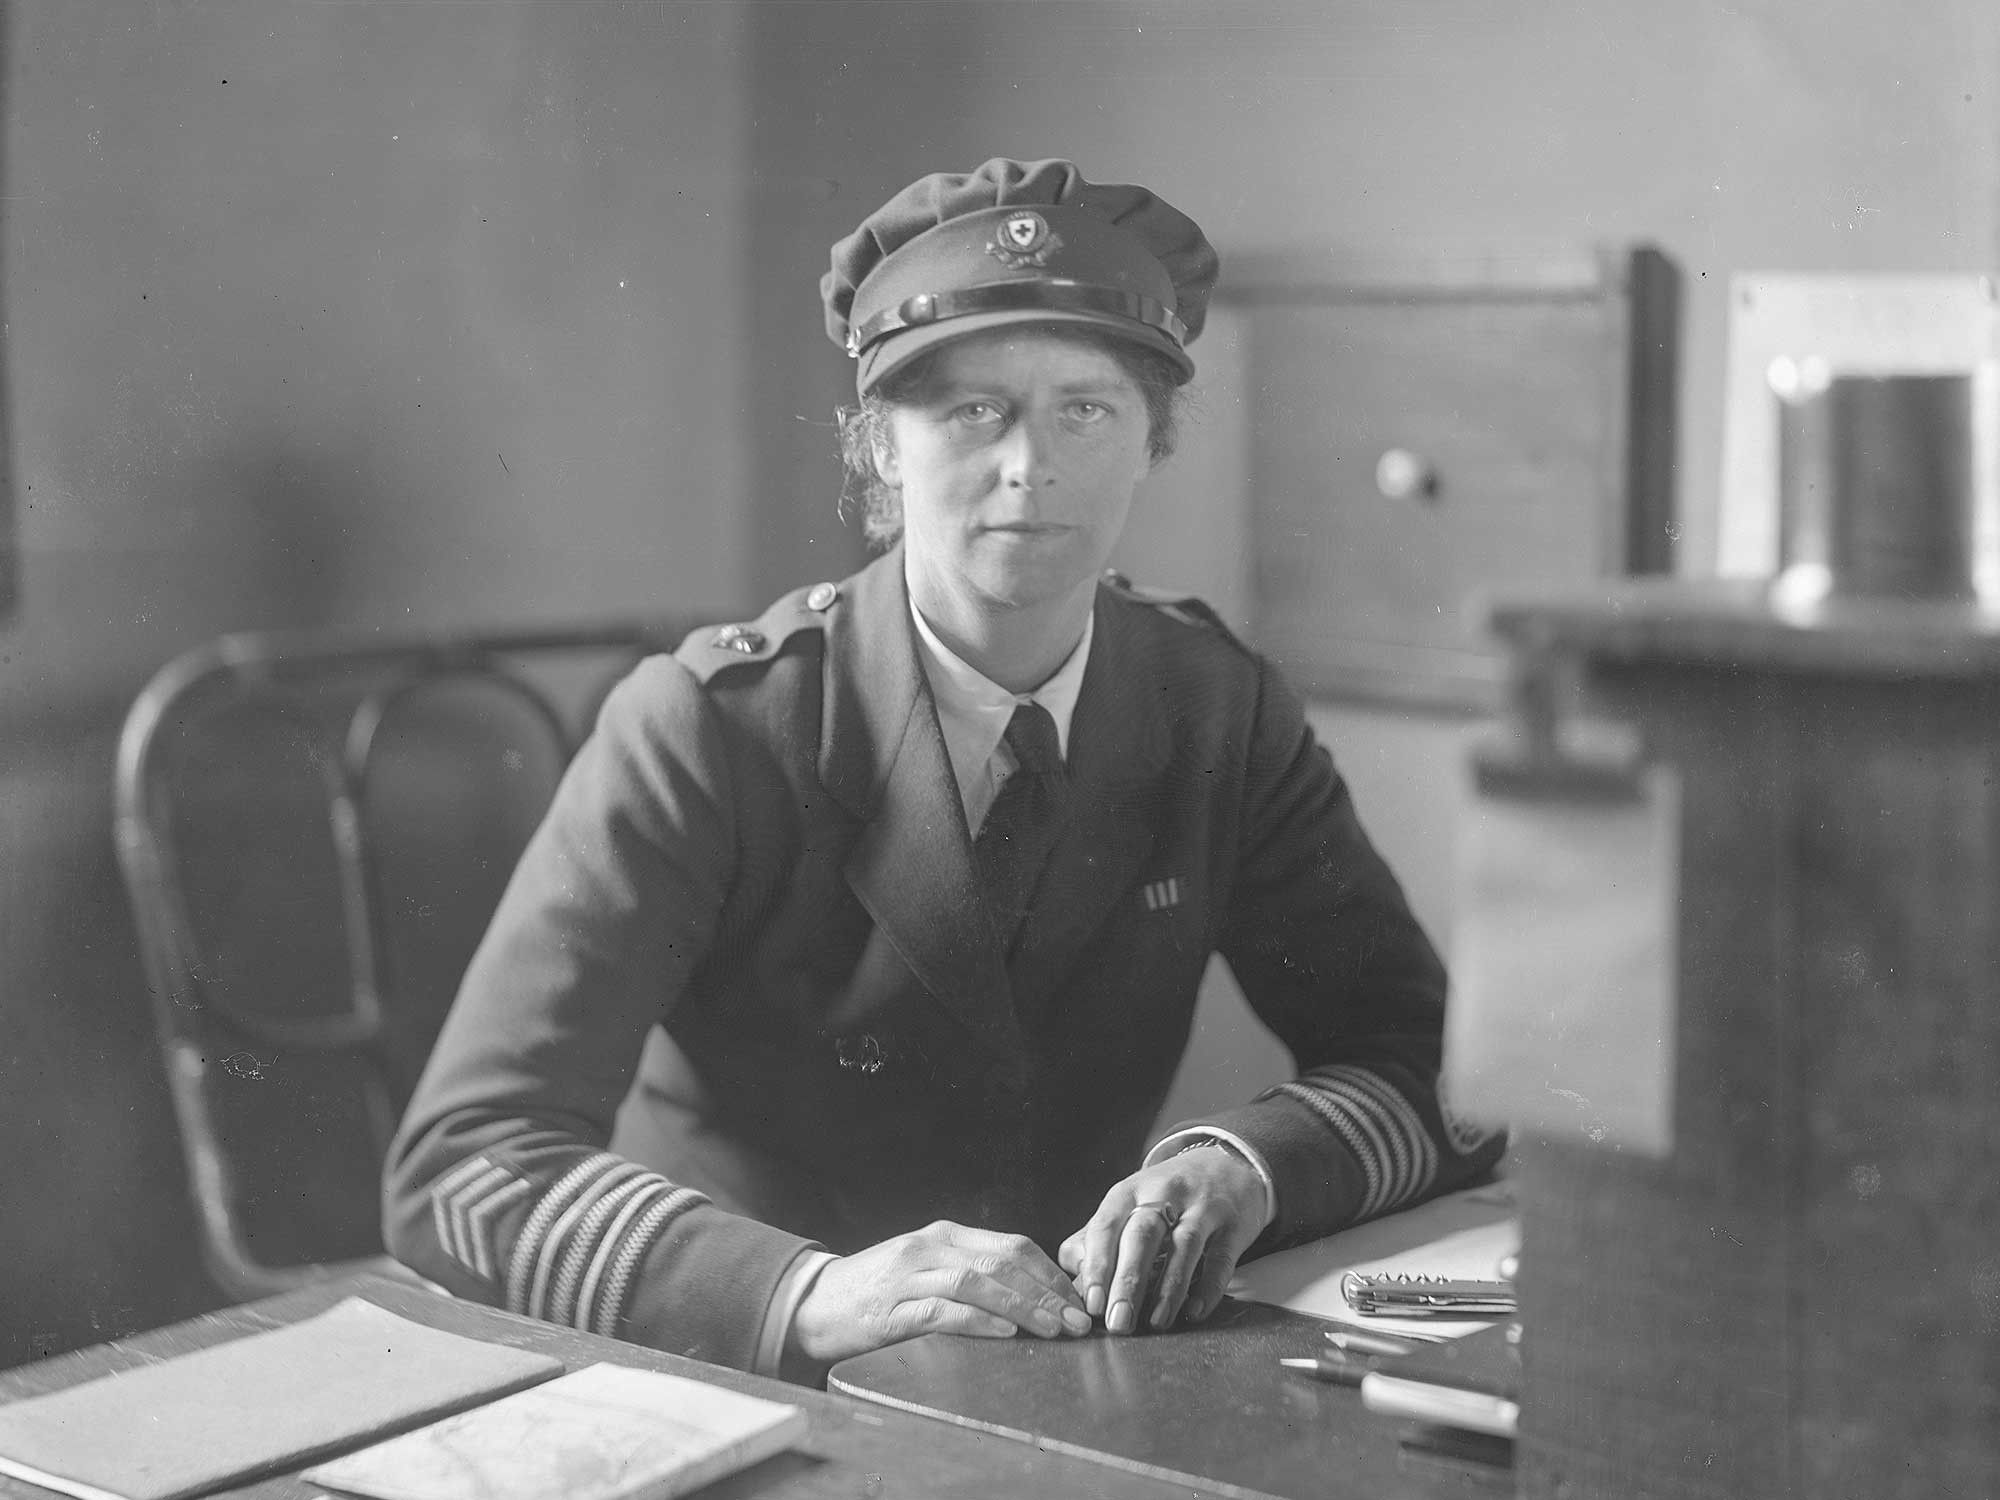 In 1919 Olive Edis took this portrait of Miss Mellor, Ambulance Convoy Commandant at Etaples in France